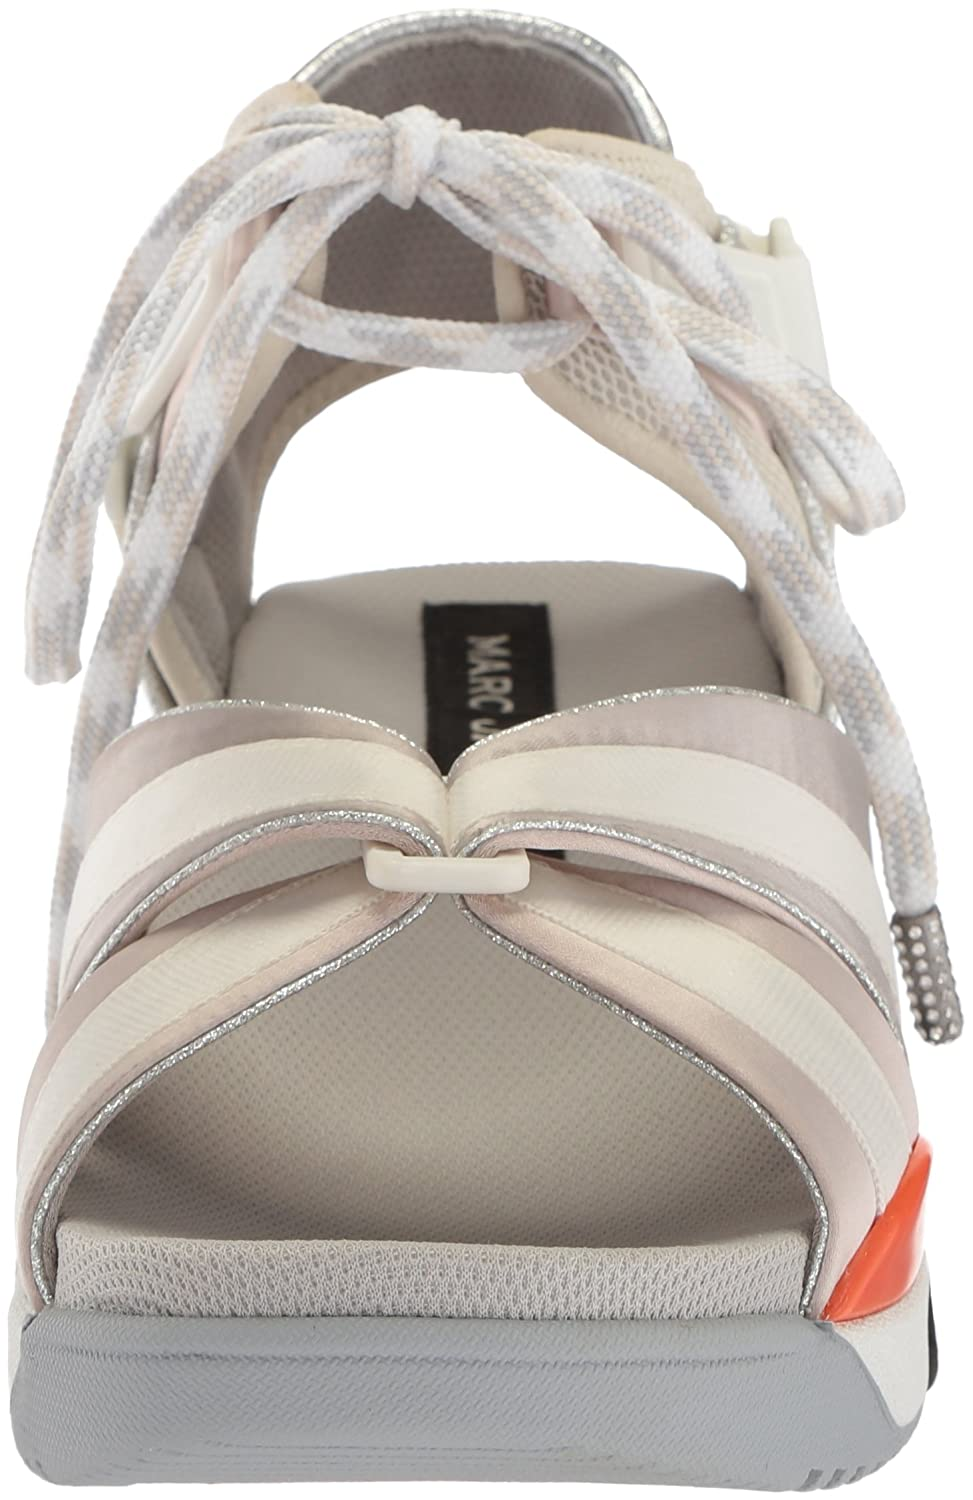 Marc Jacobs Women's Somewhere Sport Sandal B075Y6998Z 39 White/Multi M EU (9 US)|Off White/Multi 39 c3148d